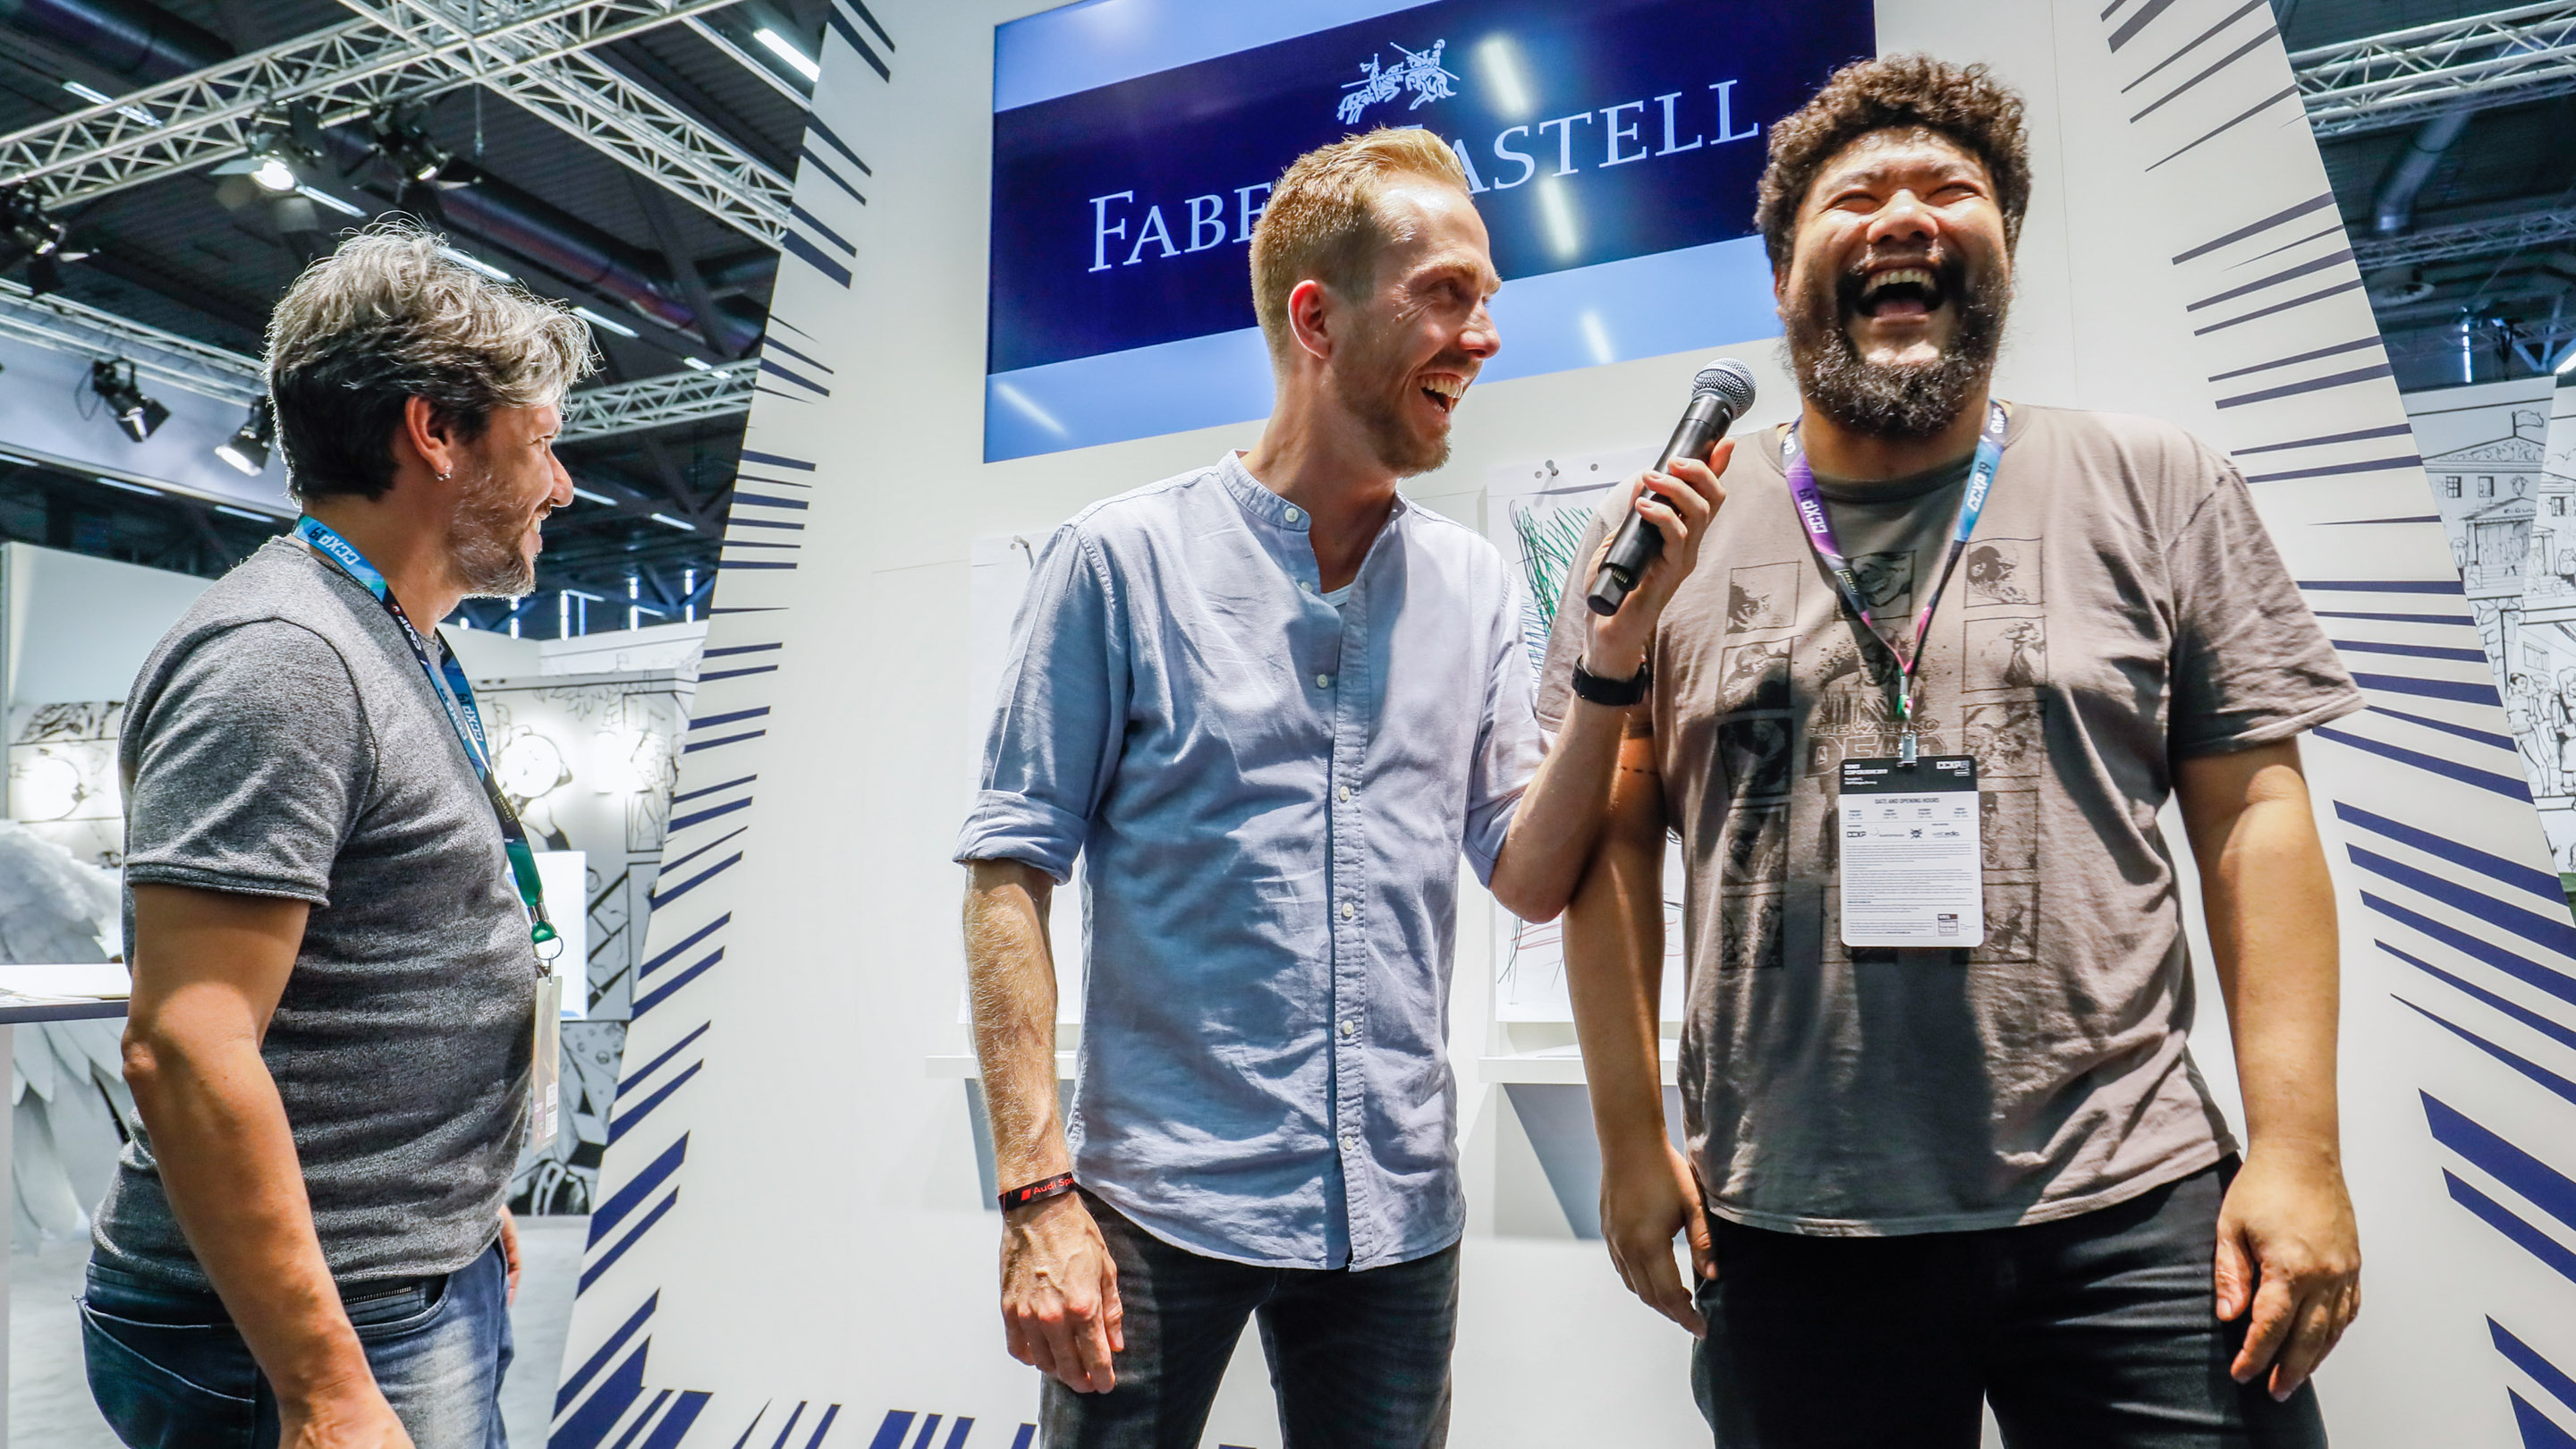 Comic Artist: Drawing Battle, Ivan Reis und Breno Tamura, Stand: Faber Castell, Halle 7, Comic Con Experience 2019